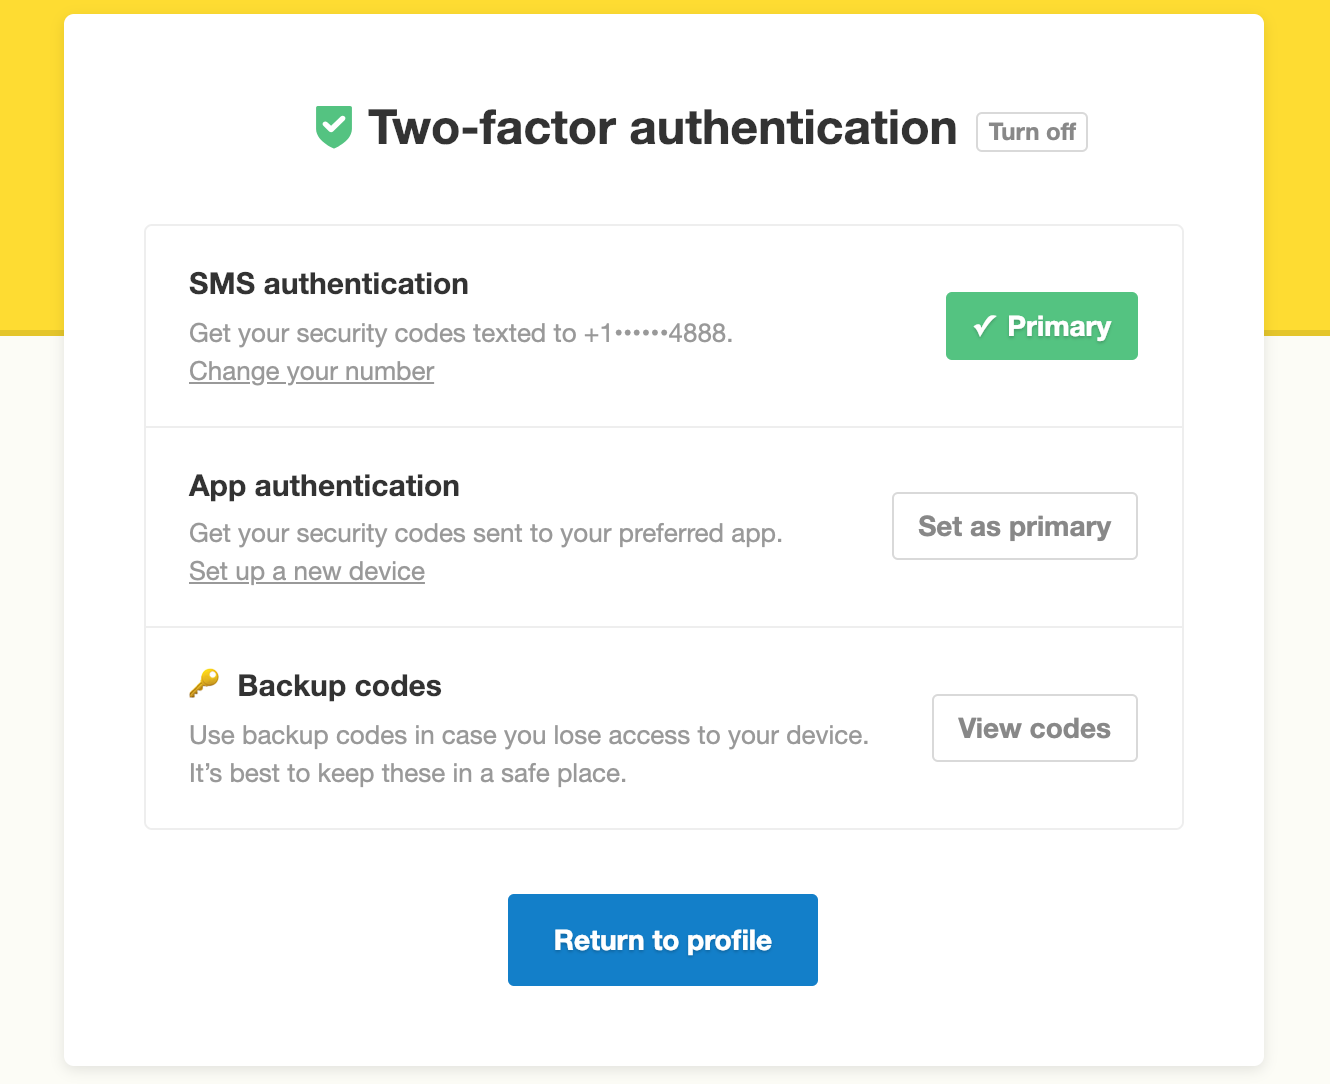 Make App Authentication The Primary Method